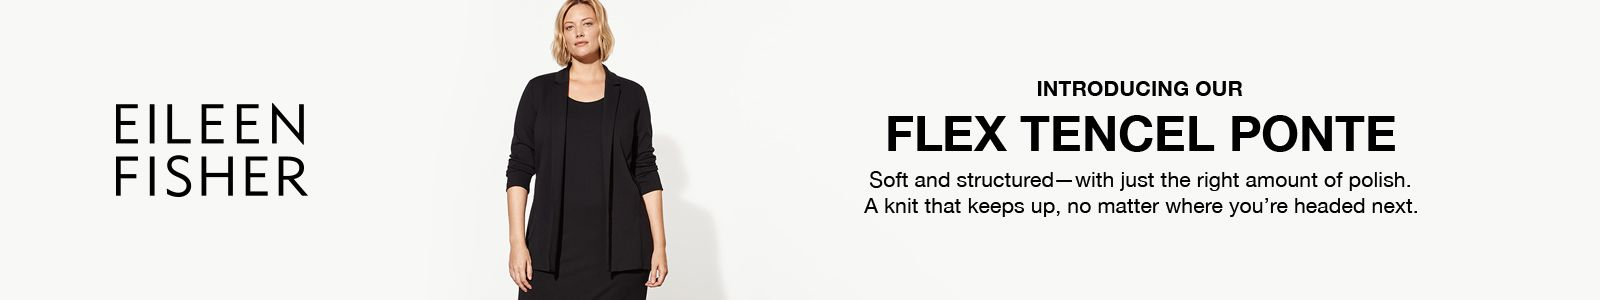 Eileen Fisher, Introducing Our, Flex Tencel Ponte